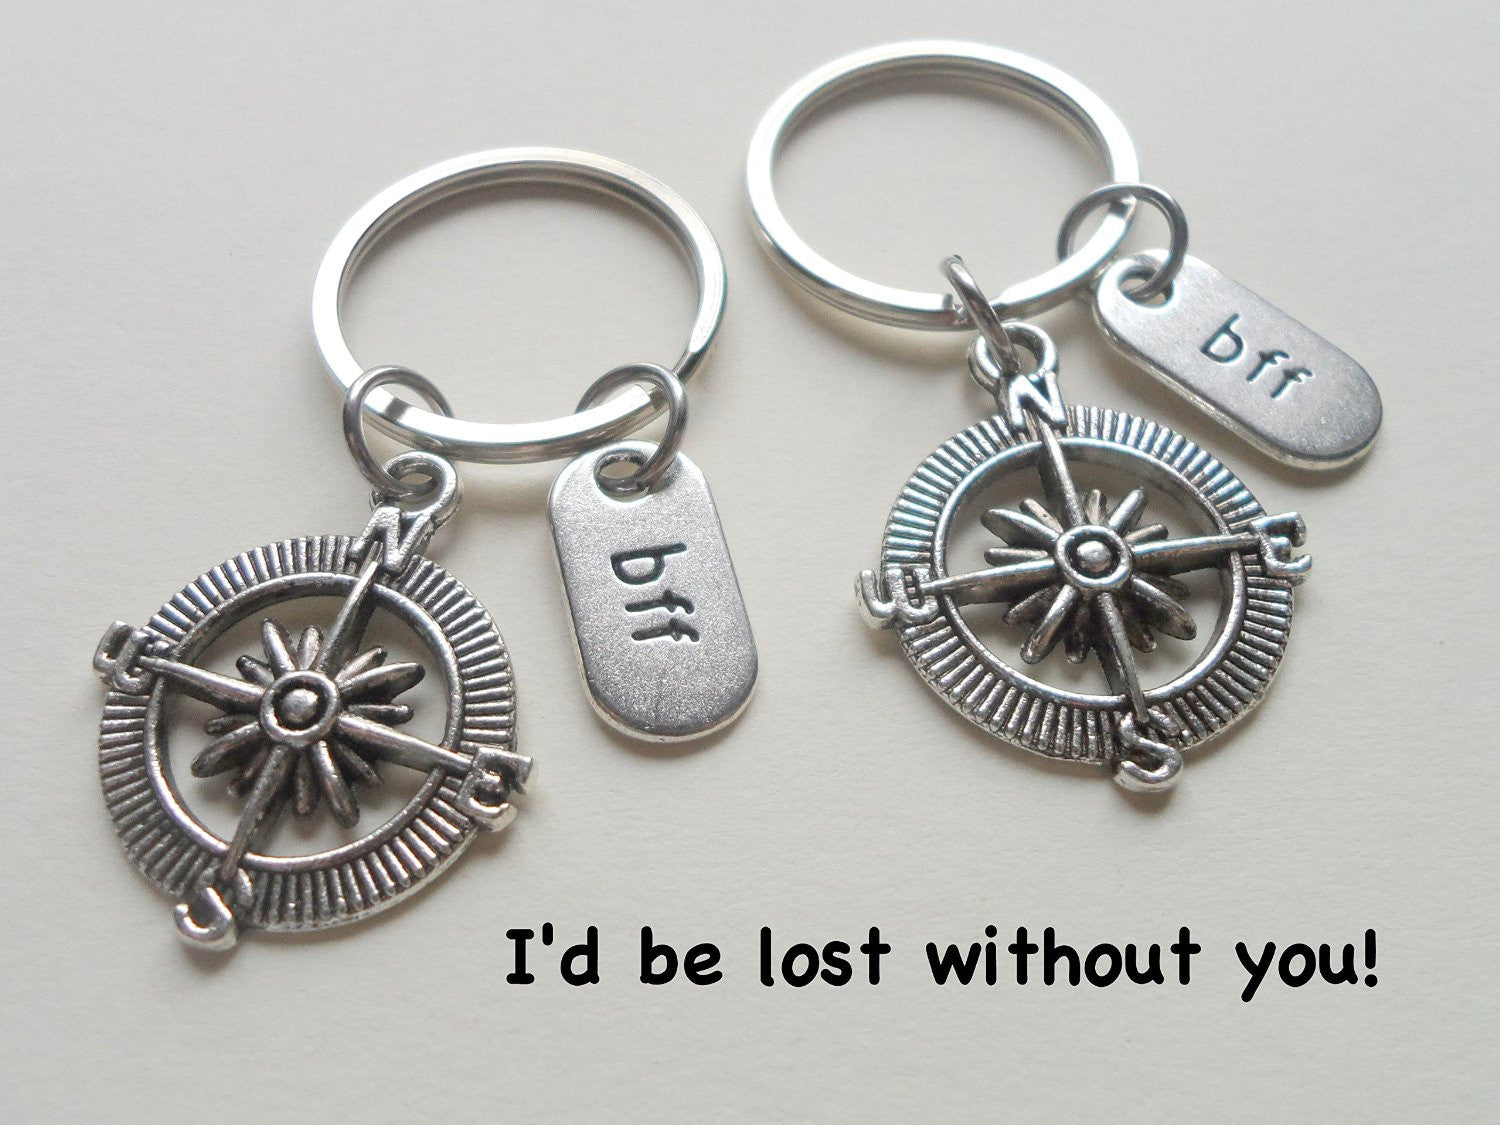 Double BFF Black /& Silver Compass Keychains Id Be Lost Without You; Best Friends Keychain Gift